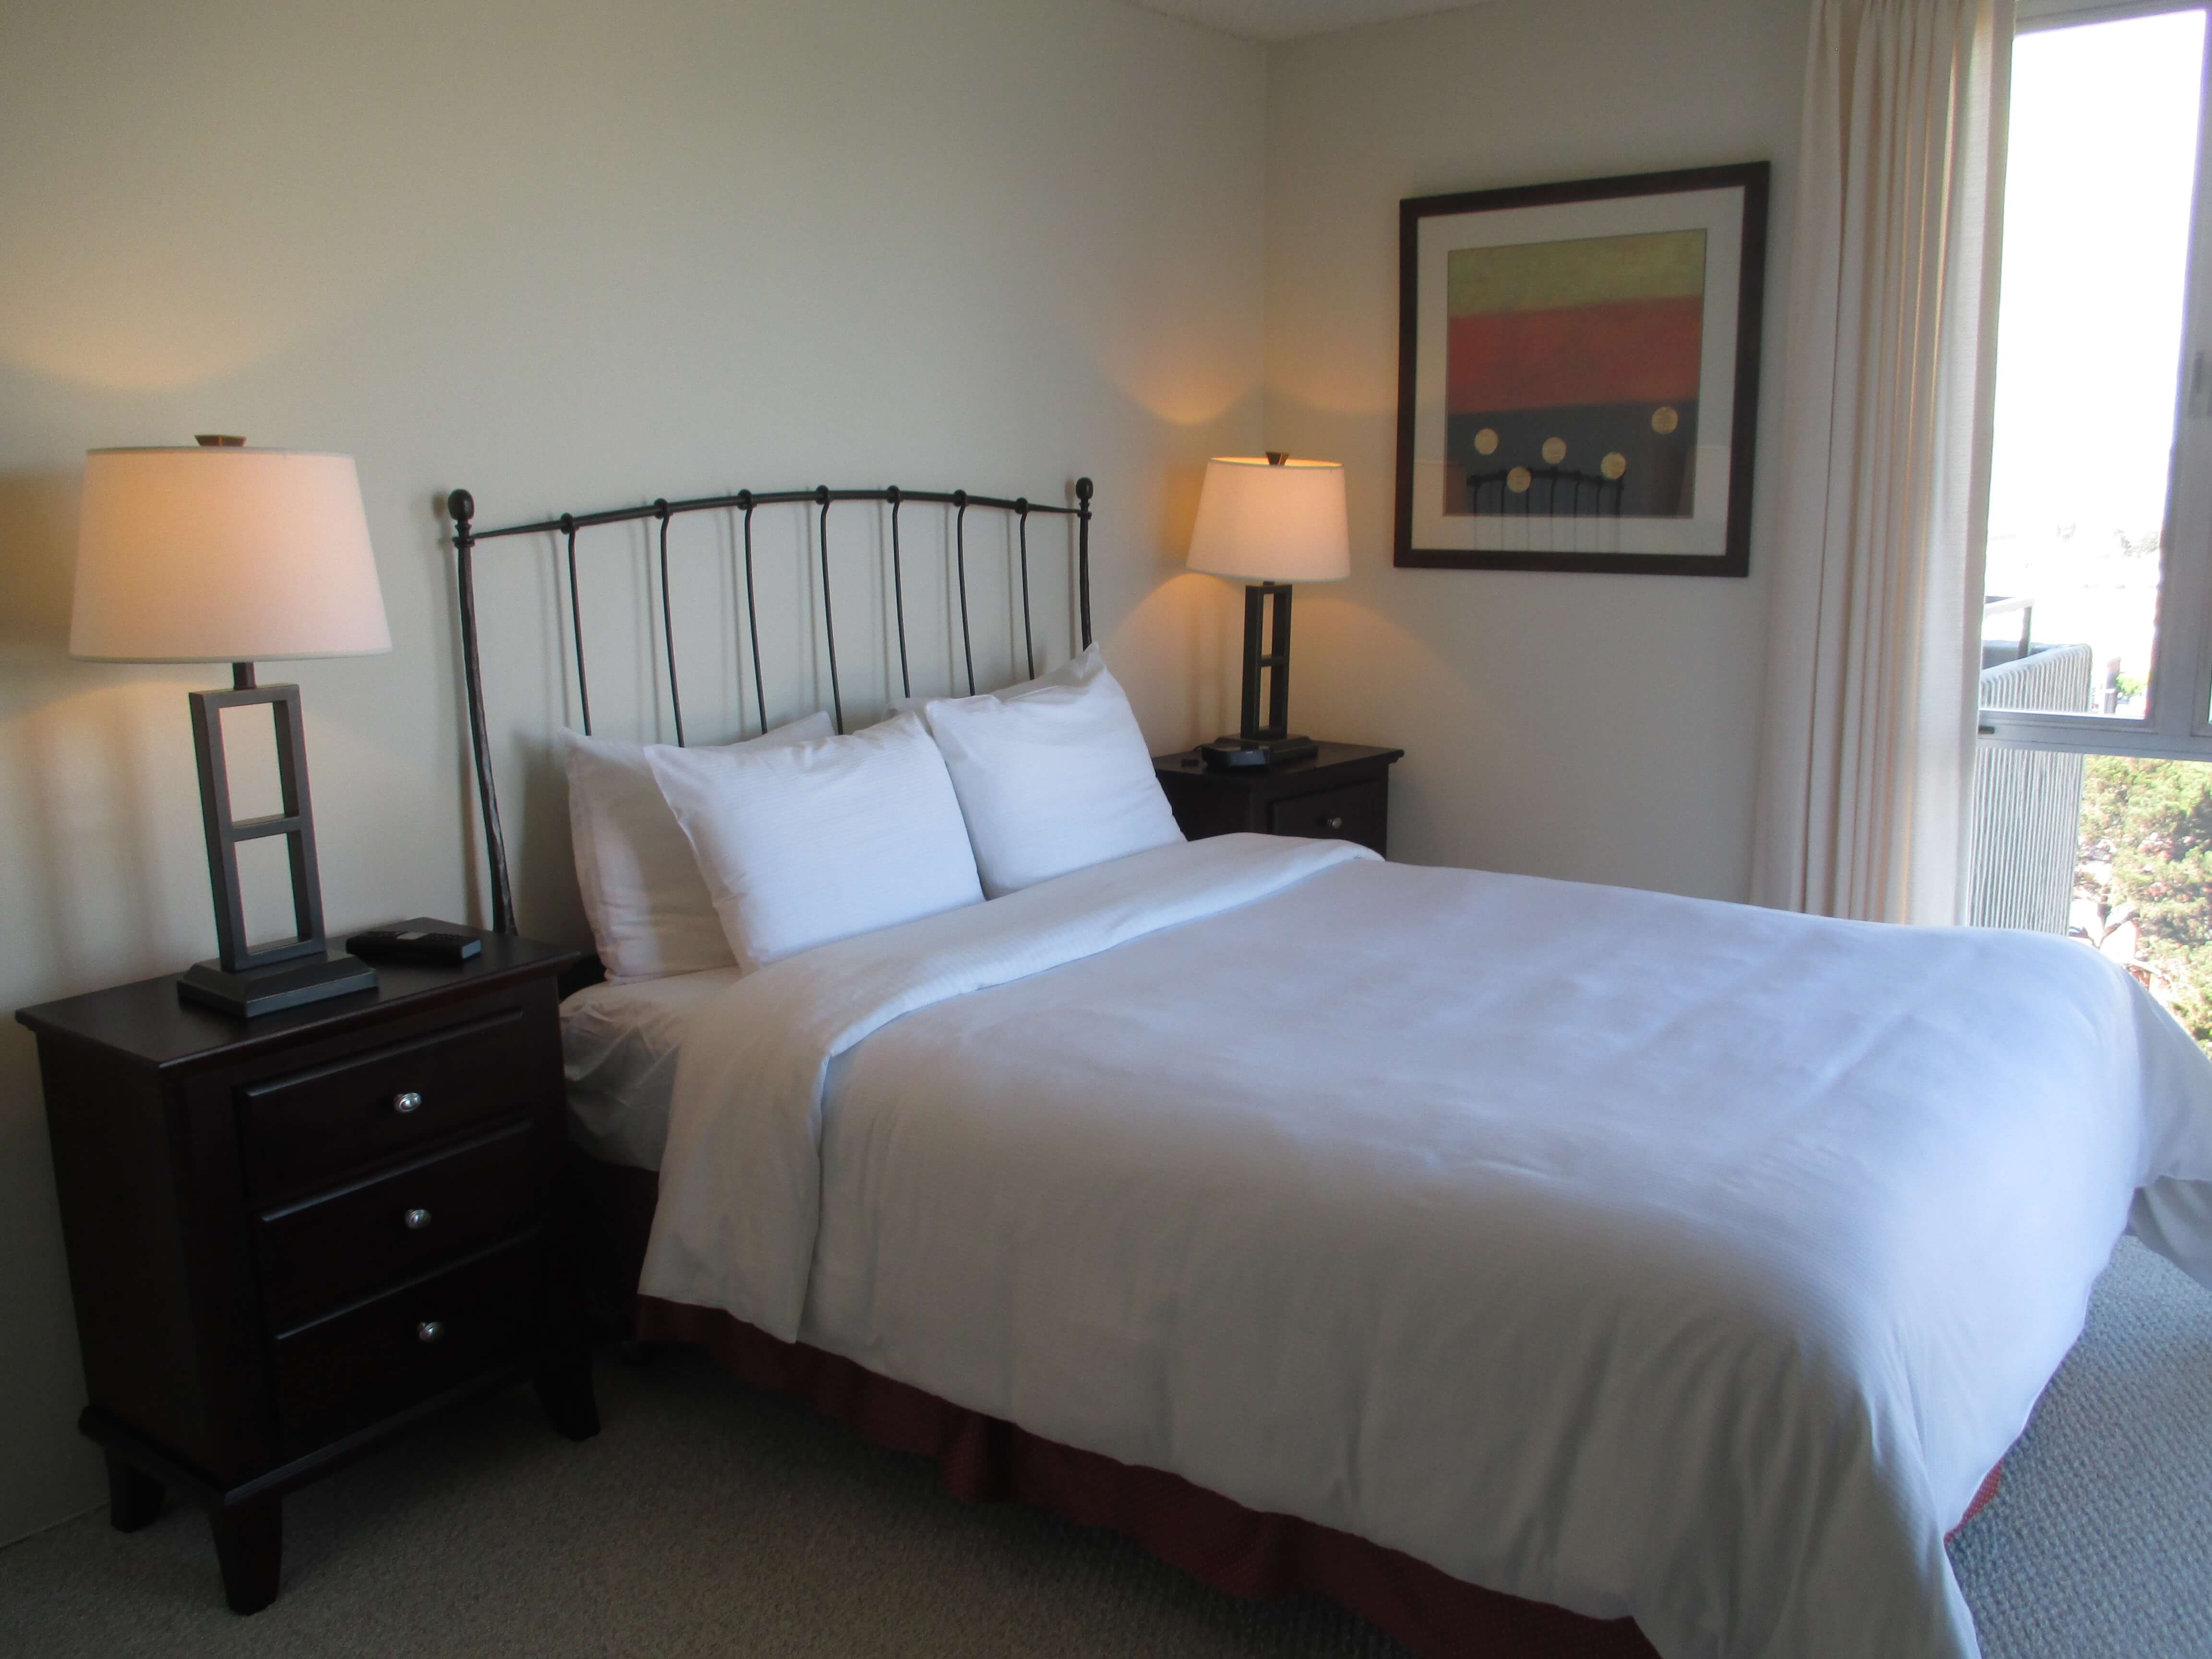 Marina District Furnished 2 Bedroom Apartment For Rent 9060 Per Month Rental